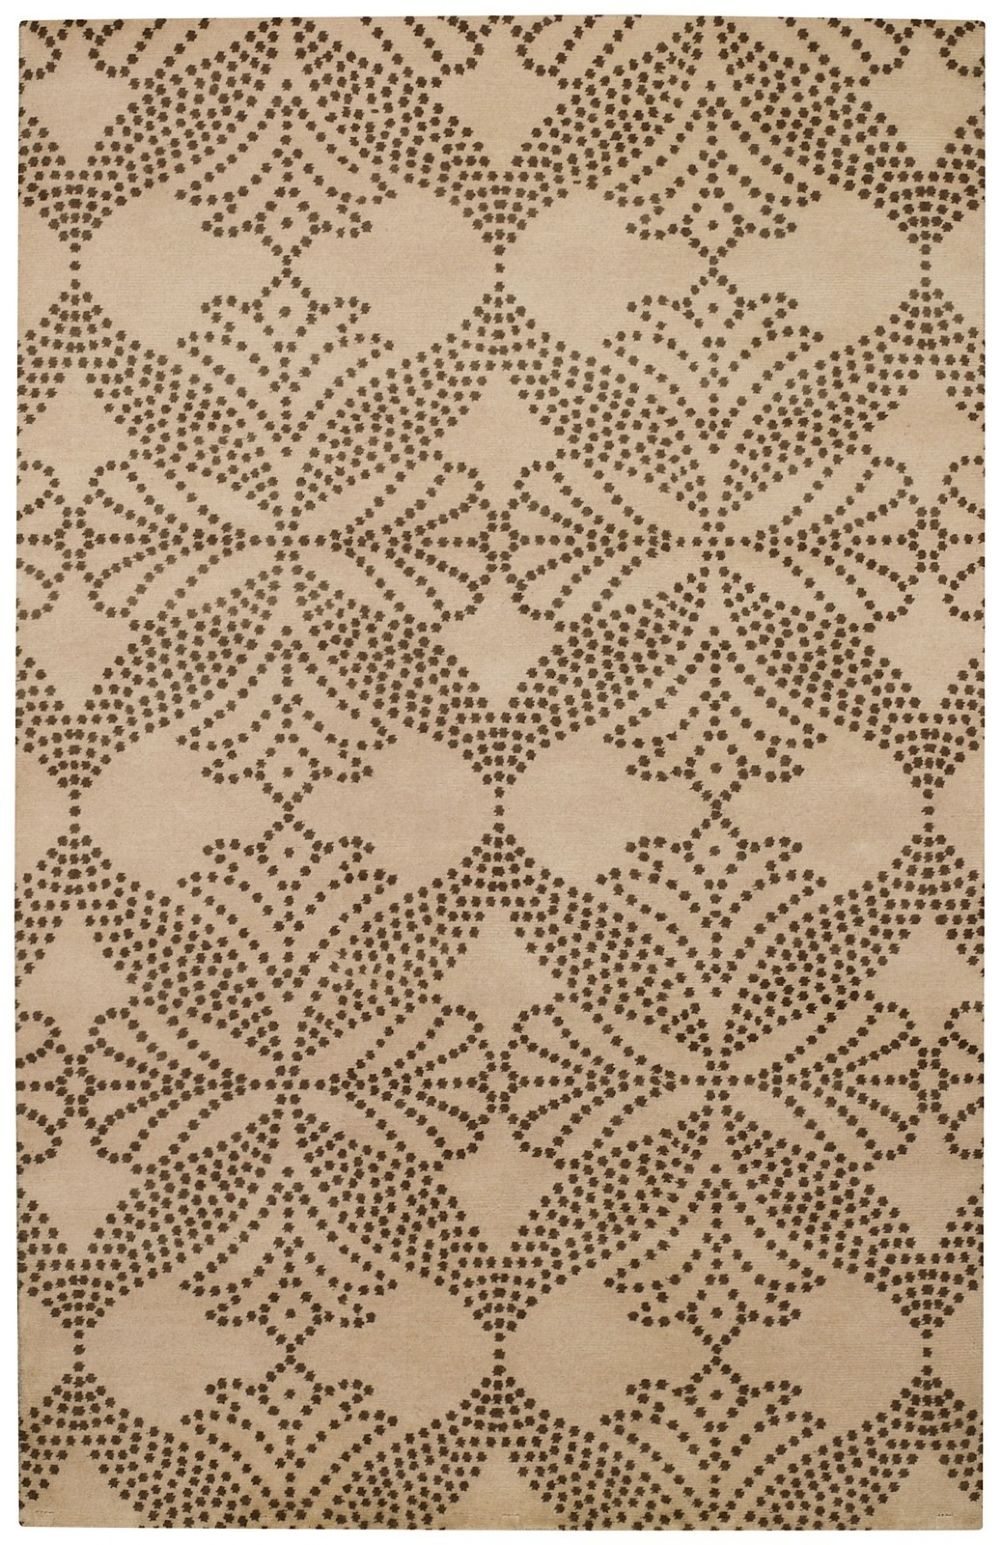 capel picturesque-grace contemporary area rug collection